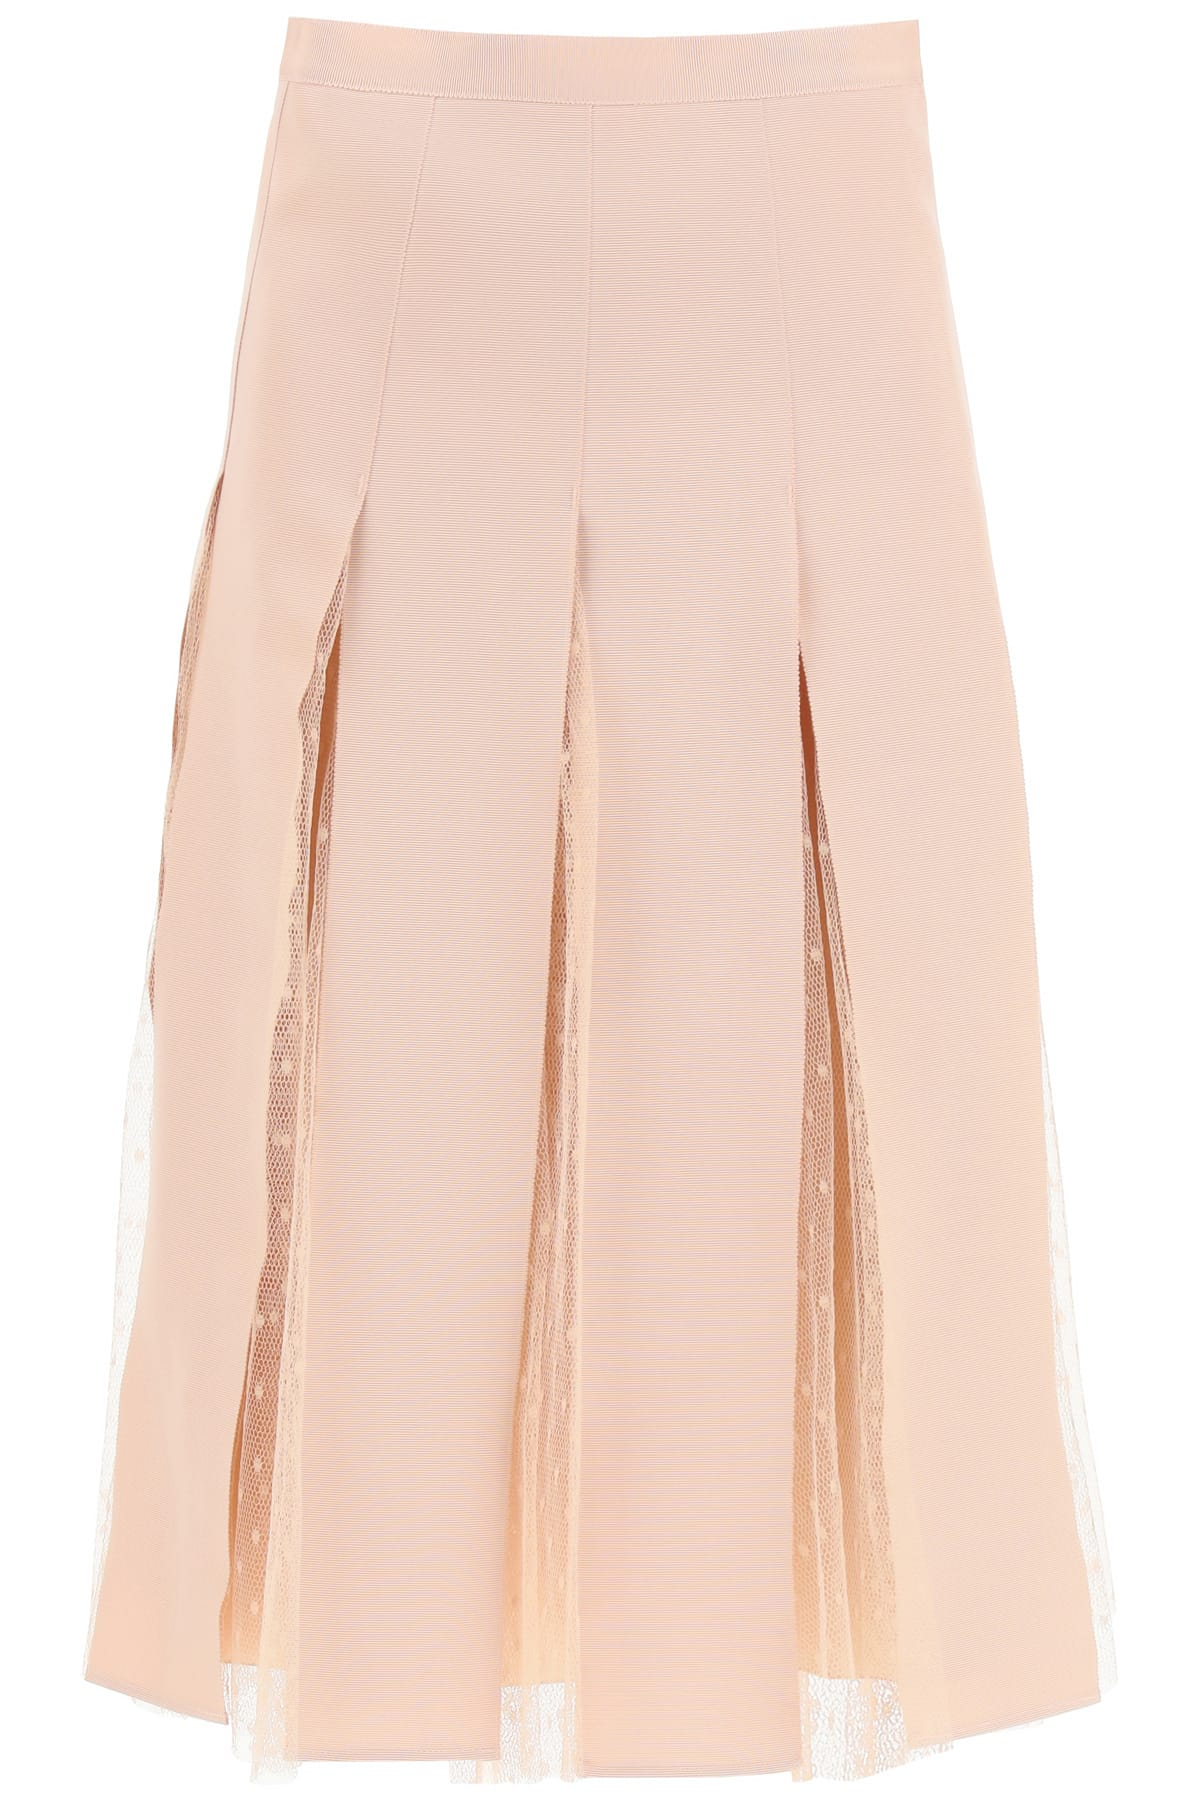 RED VALENTINO MIDI SKIRT IN GROSGRAIN AND TULLE 42 Pink